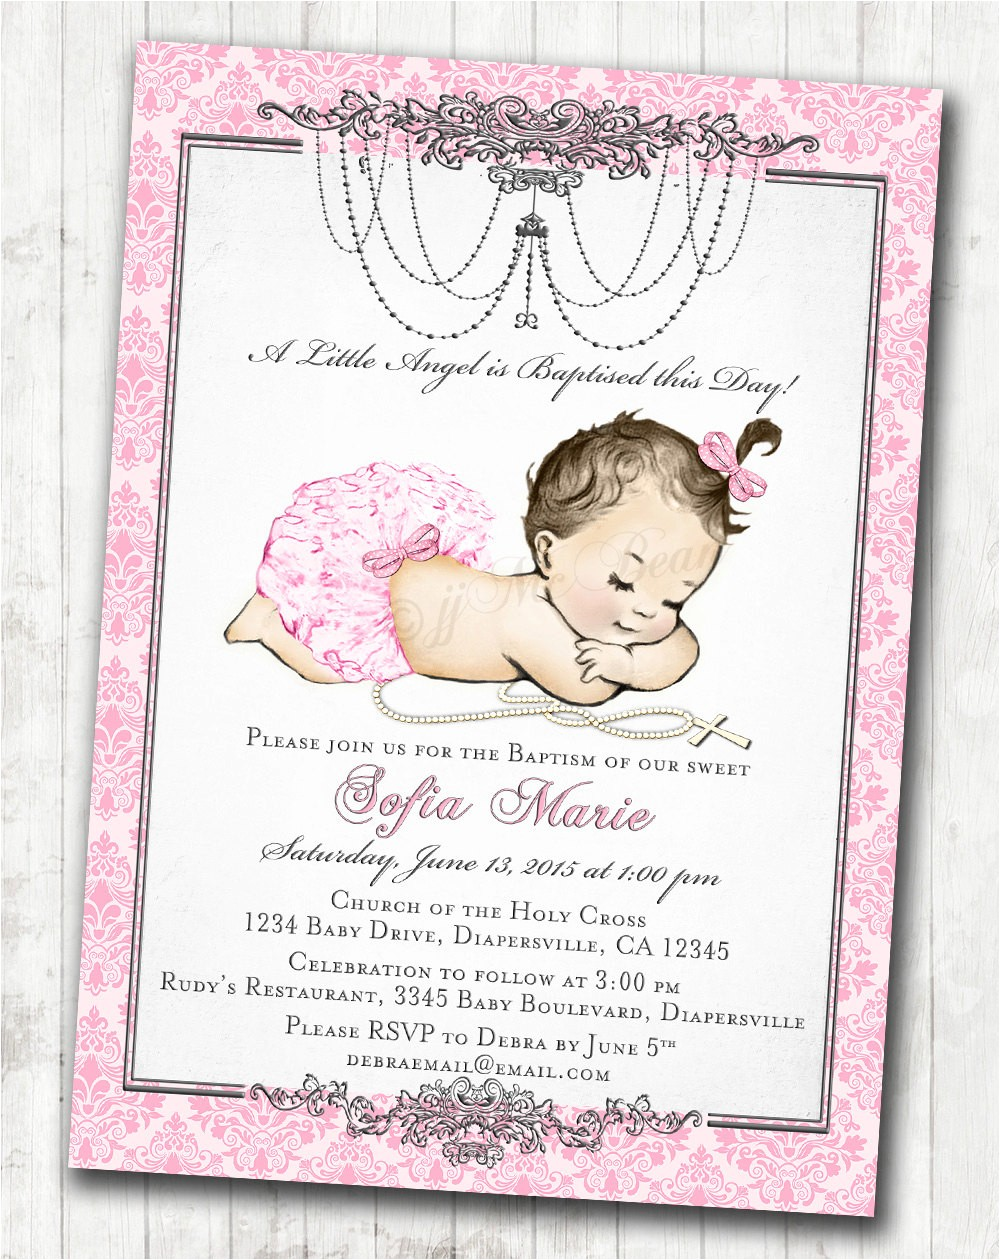 vintage christening invitation christening invitations for girl christeningjjmcbean on etsy